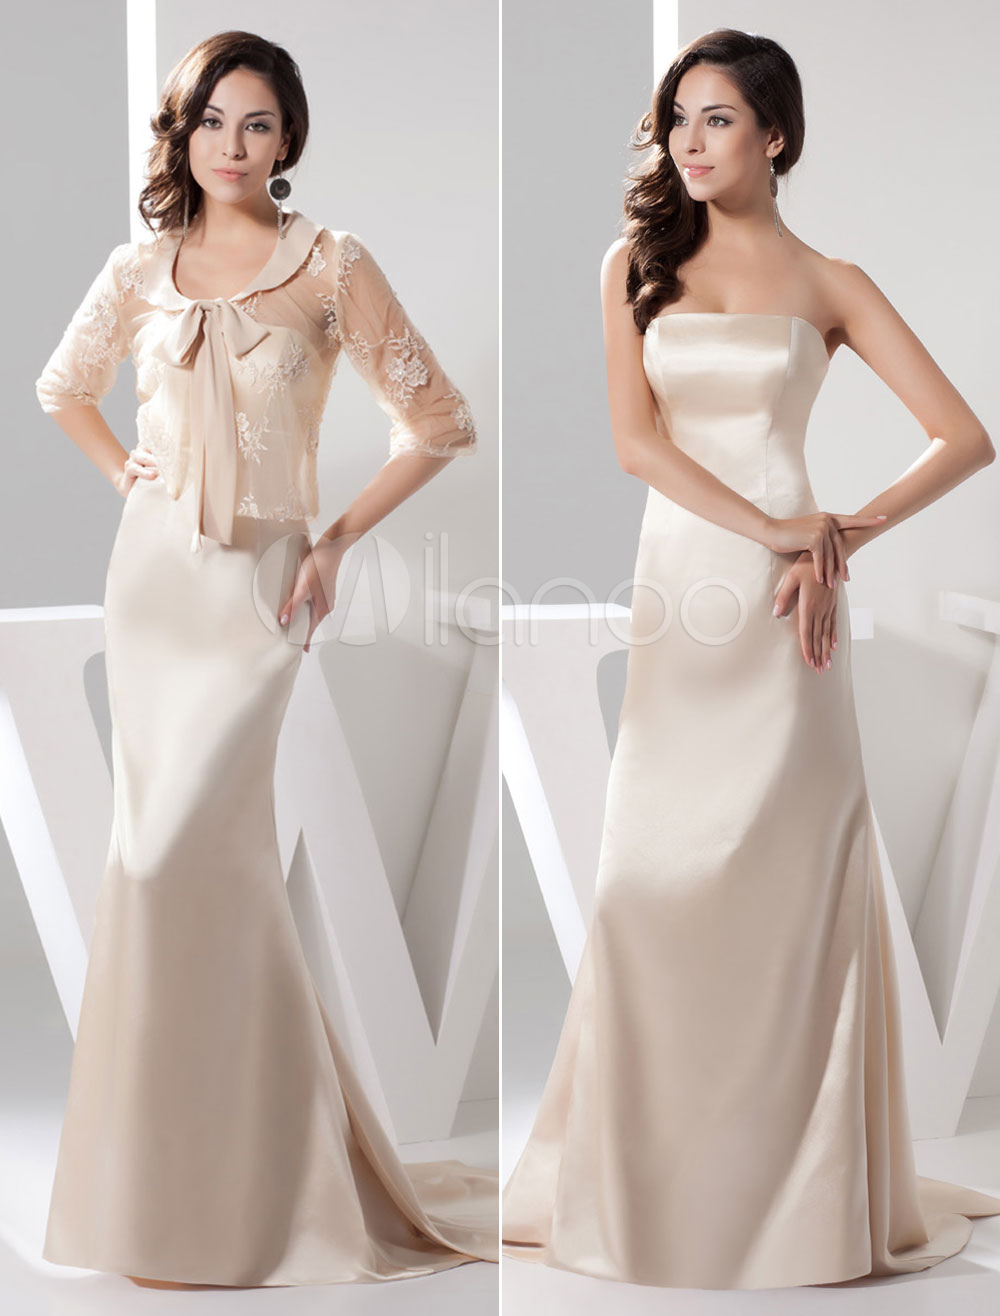 Buy Mermaid Mother Of The Bride Dress Suits Satin Beading Chaple Train Wedding Party Dress With Lace Jacket Milanoo for $136.79 in Milanoo store